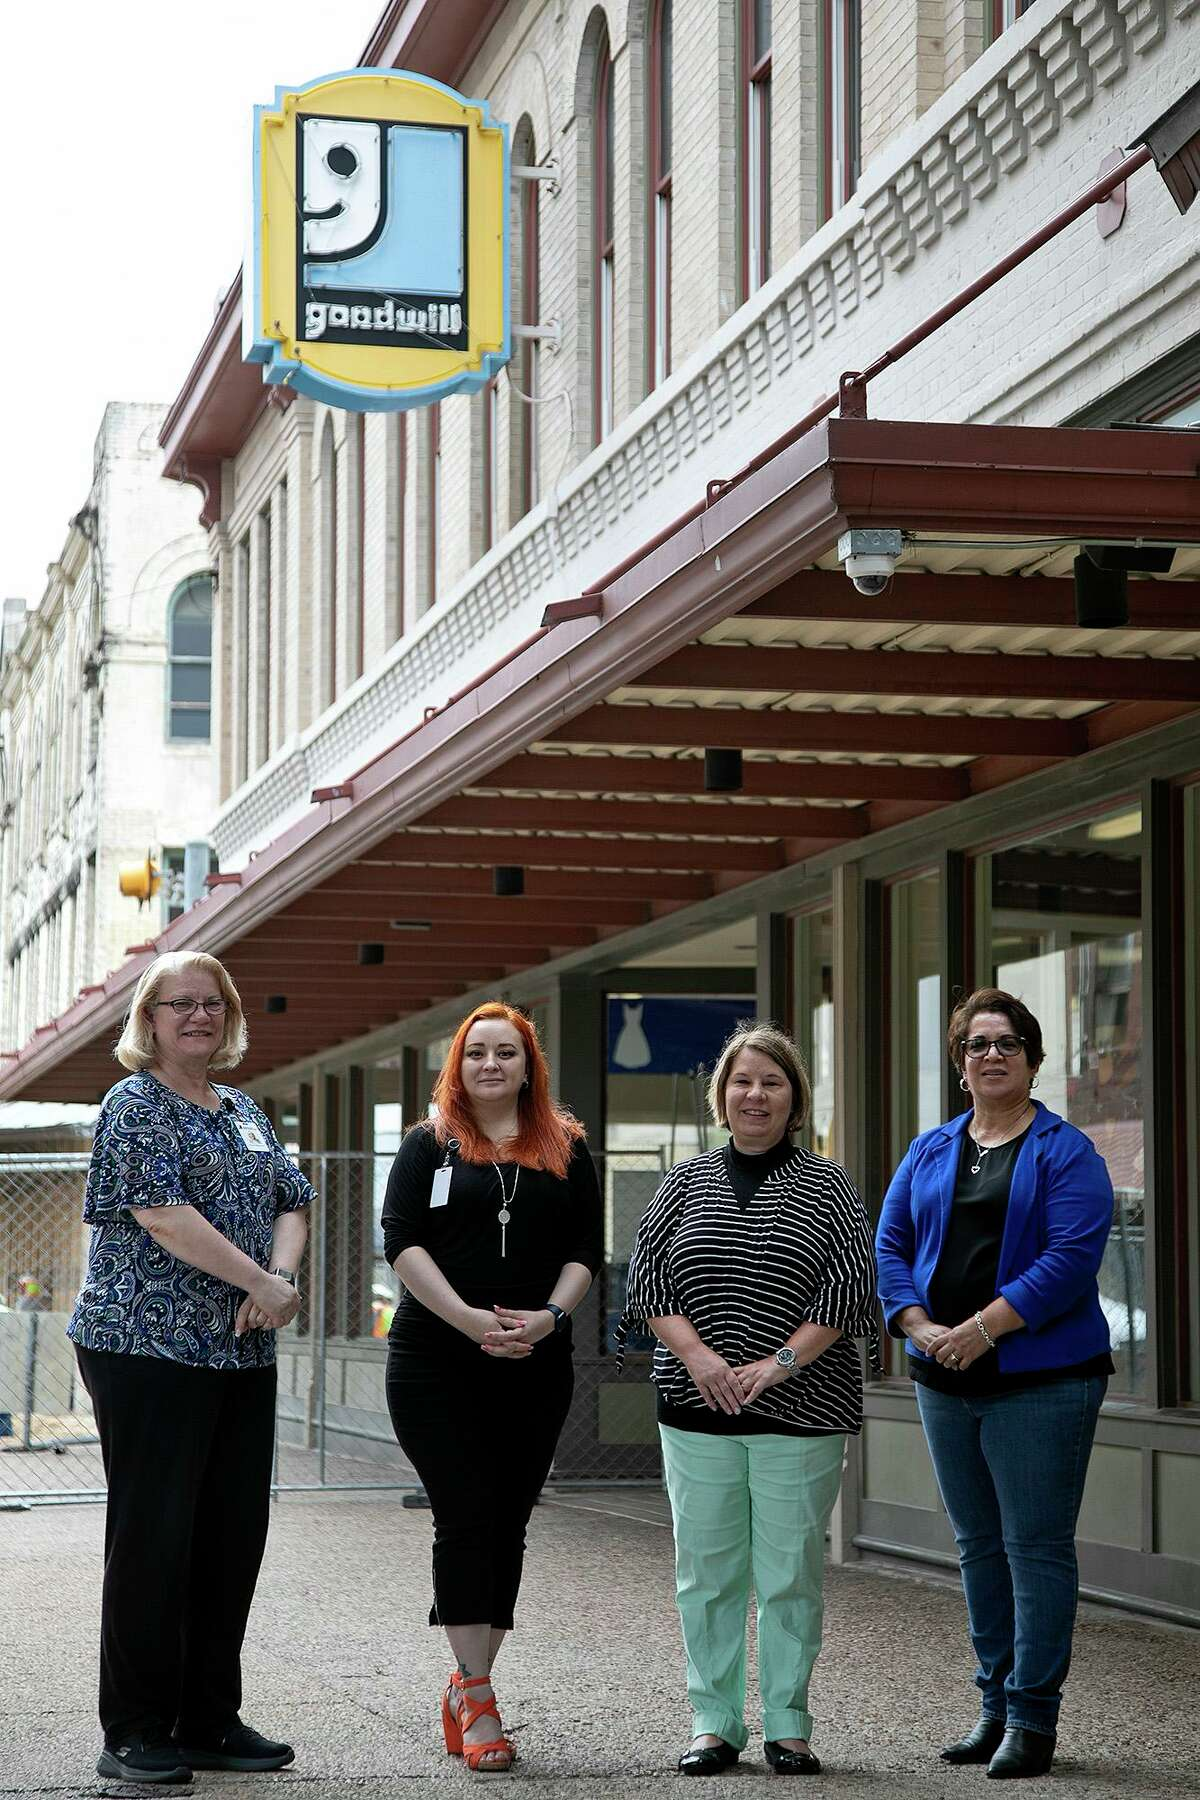 Employees Trina Hibbard, from left, Lauren Serrato, Janet Ward and Maria Z. Aguillon are shown outside Goodwill in downtown. Their workplace is just two blocks away from a siren whose source Aguillon long had wondered about.